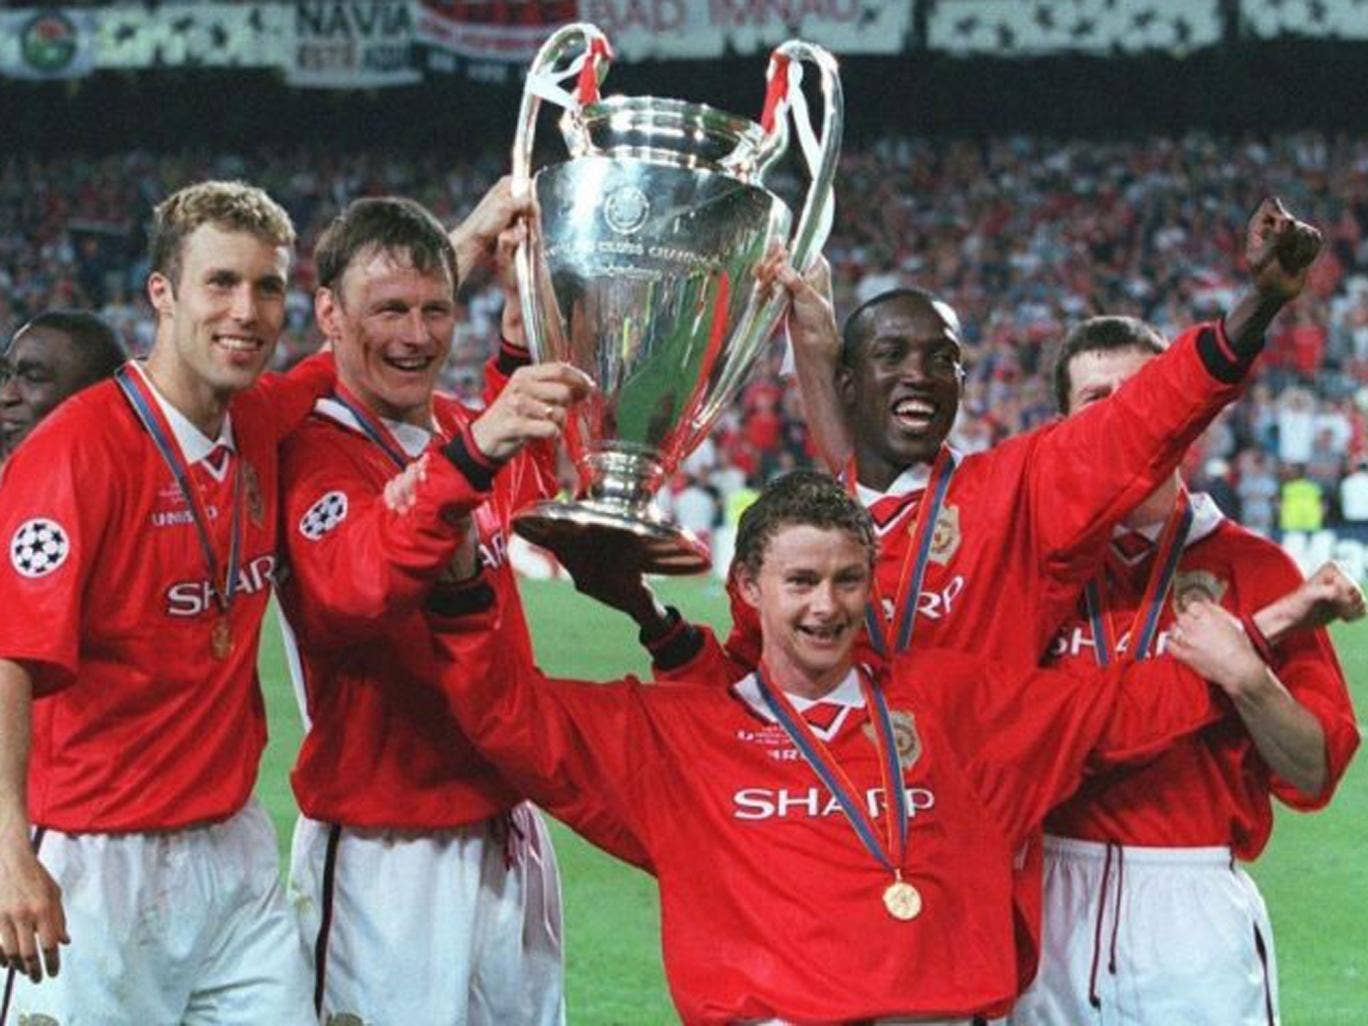 United players wearing Umbro kit win the Champions League in 1999